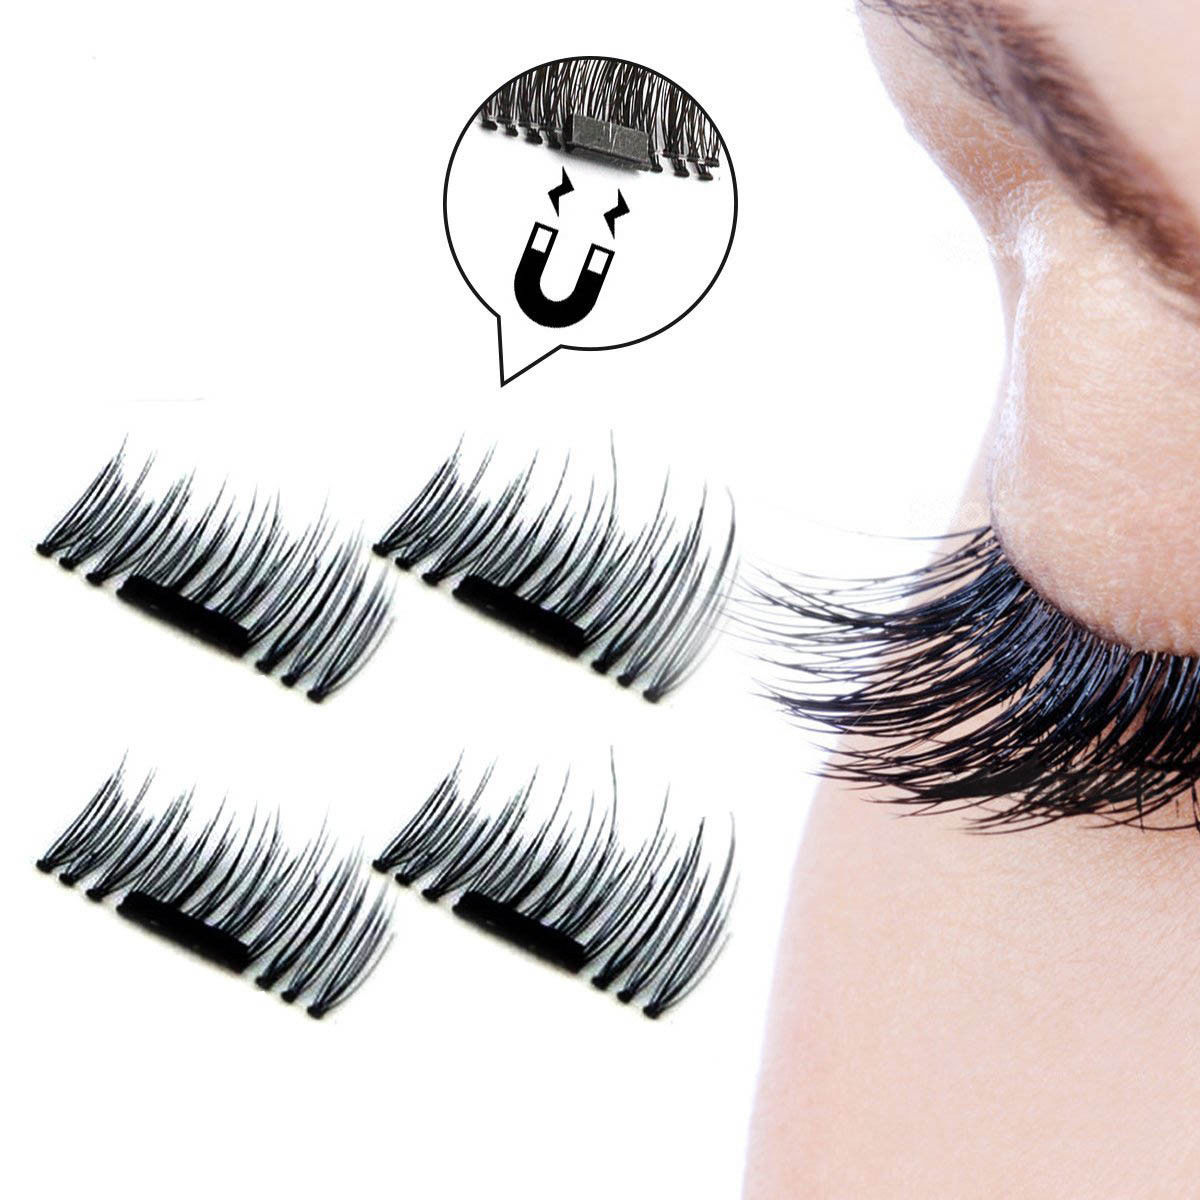 4stk 3d magnetisch wimpern augen make up falsche k nstliche wimpern eye lashes ebay. Black Bedroom Furniture Sets. Home Design Ideas